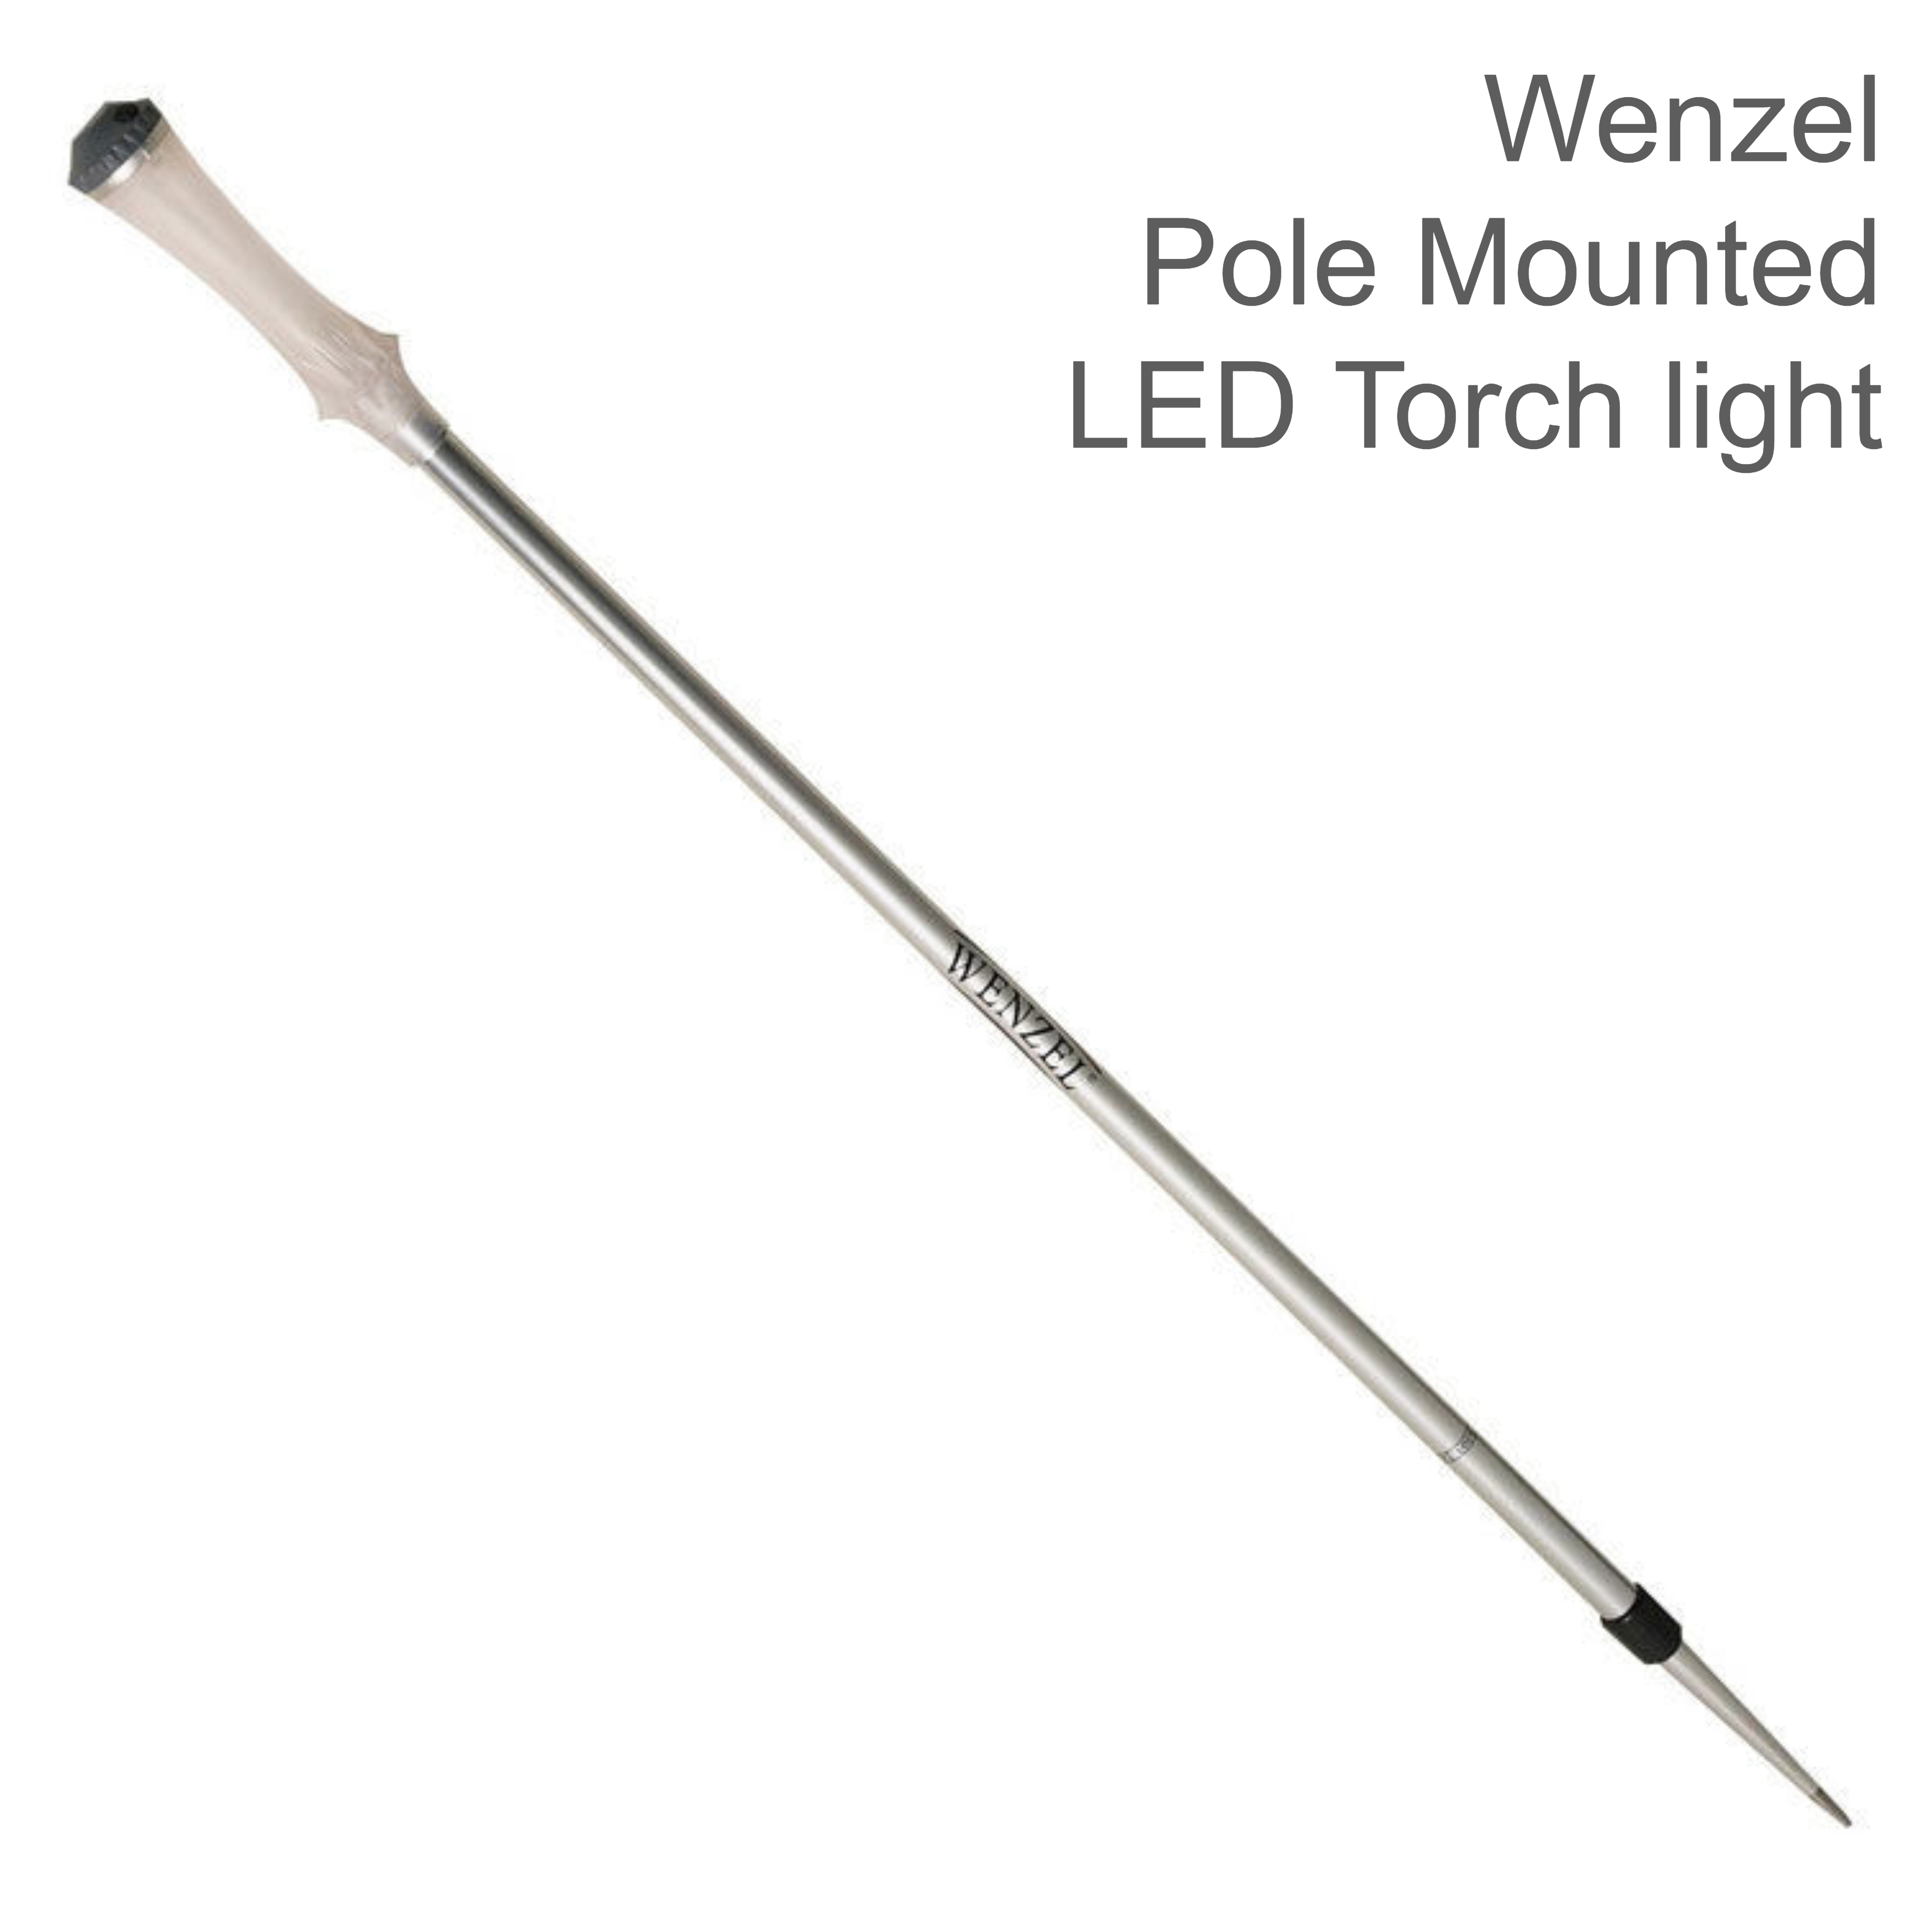 Wenzel LED Torch light Extendable Aluminium Pole Mounted Lamp|51614|Metallic